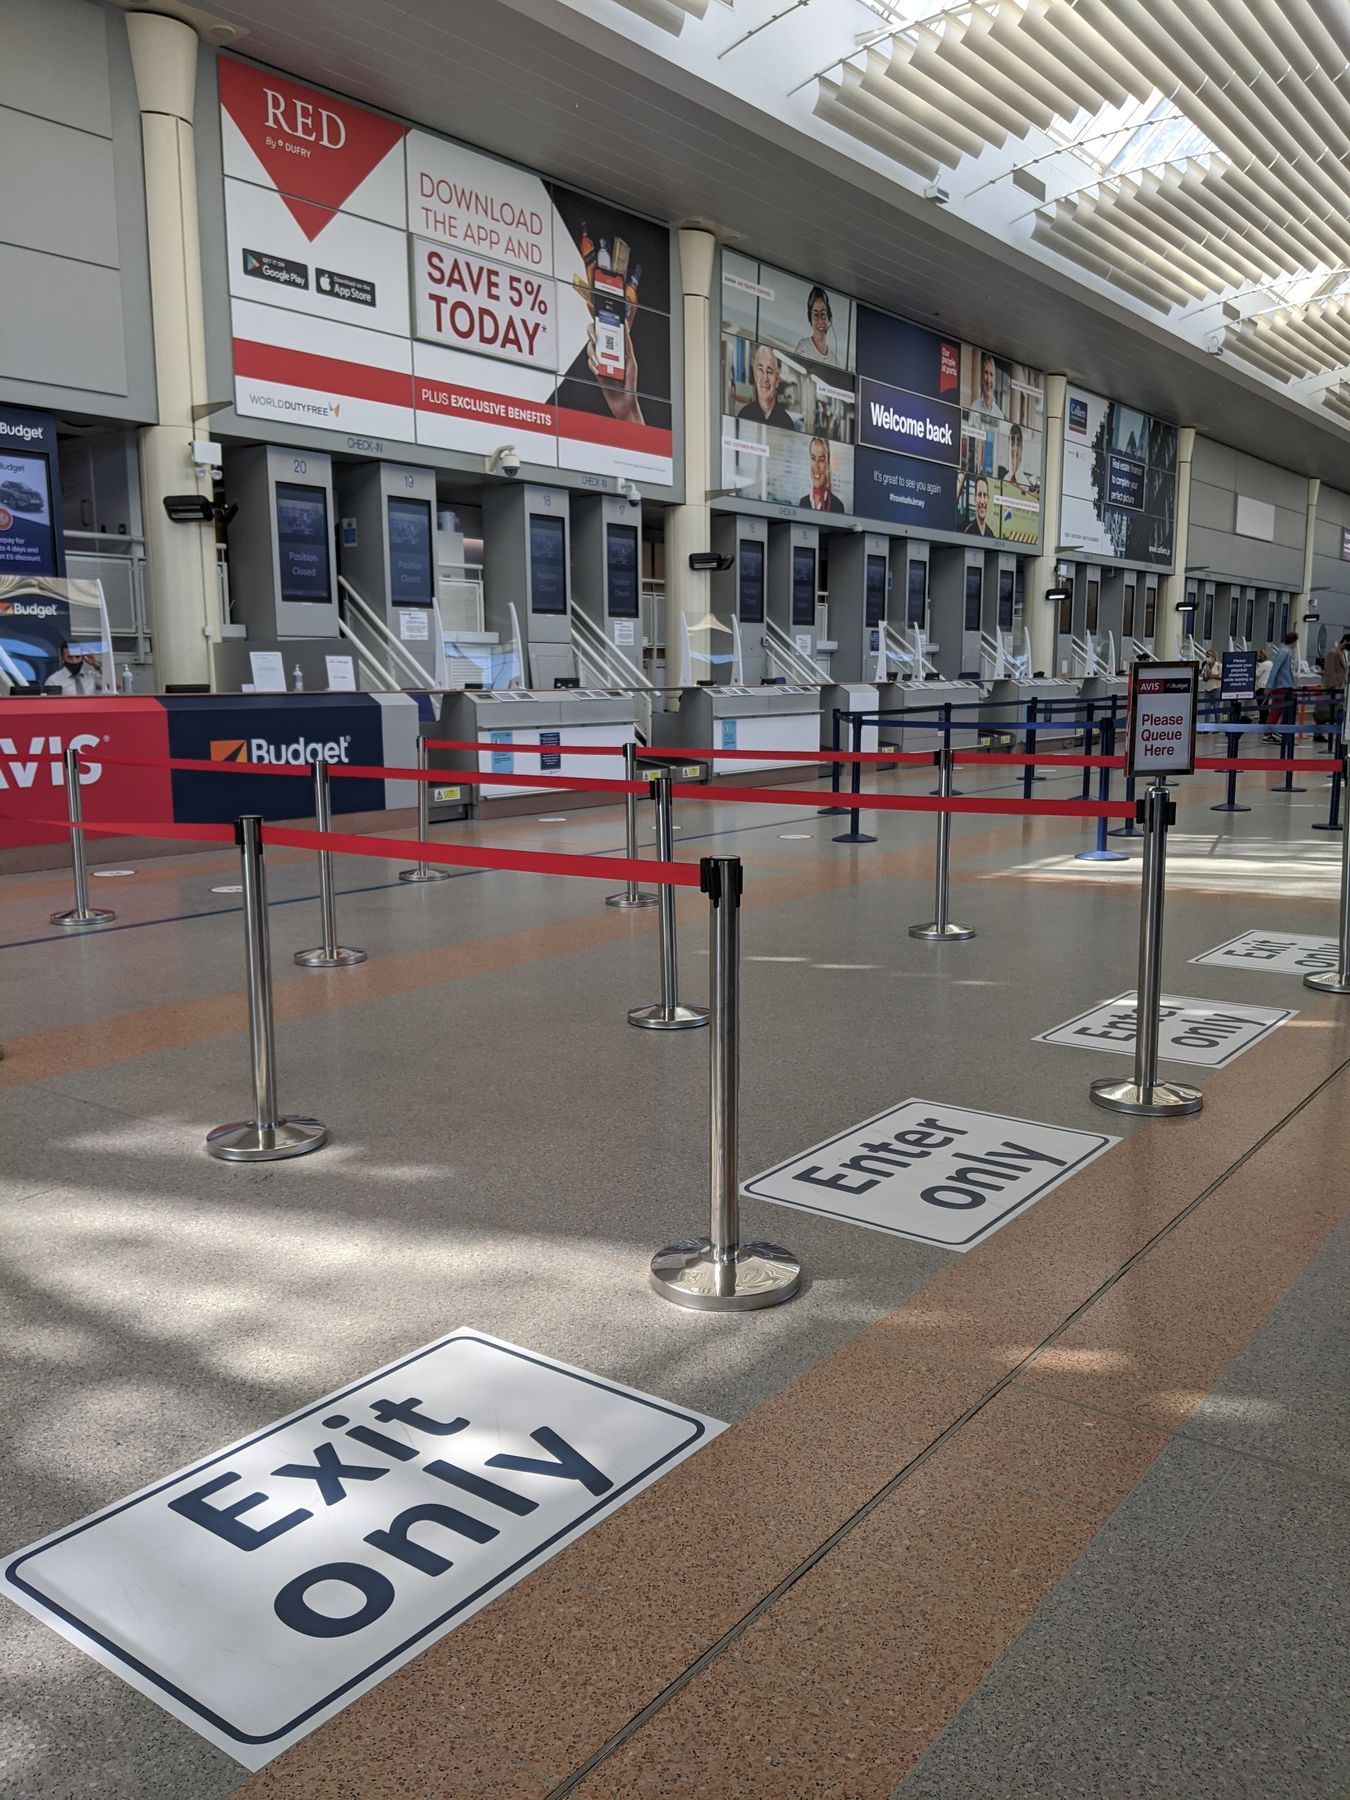 exit and enter lanes at the airport check-in counters